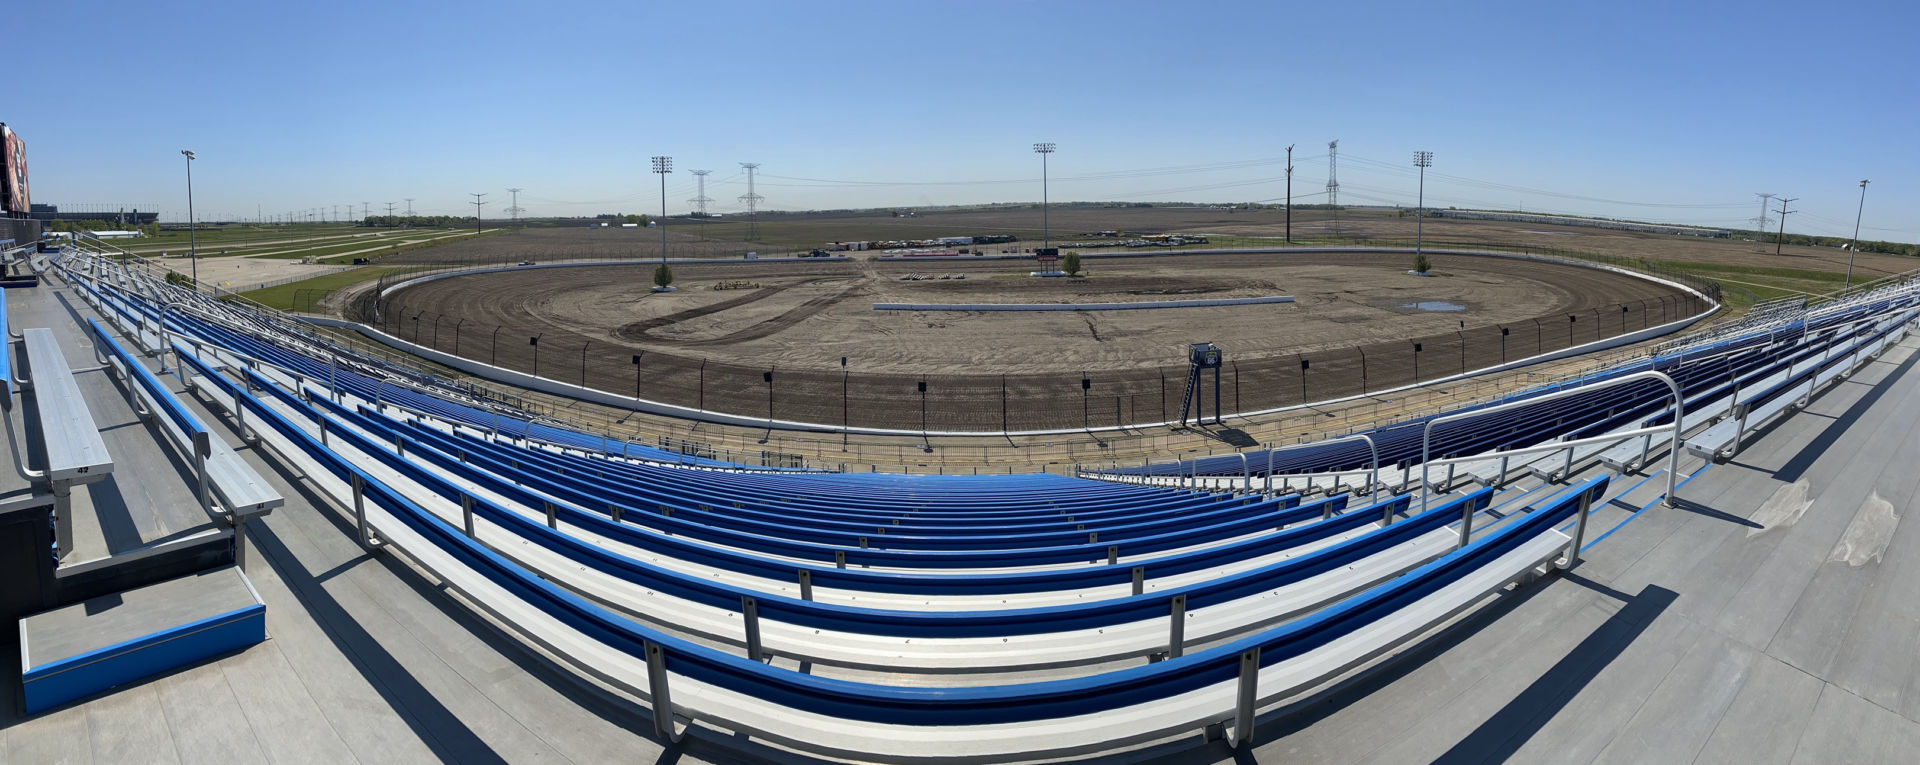 The Dirt Oval at Route 66 Raceway. Photo courtesy Route 66 Raceway.